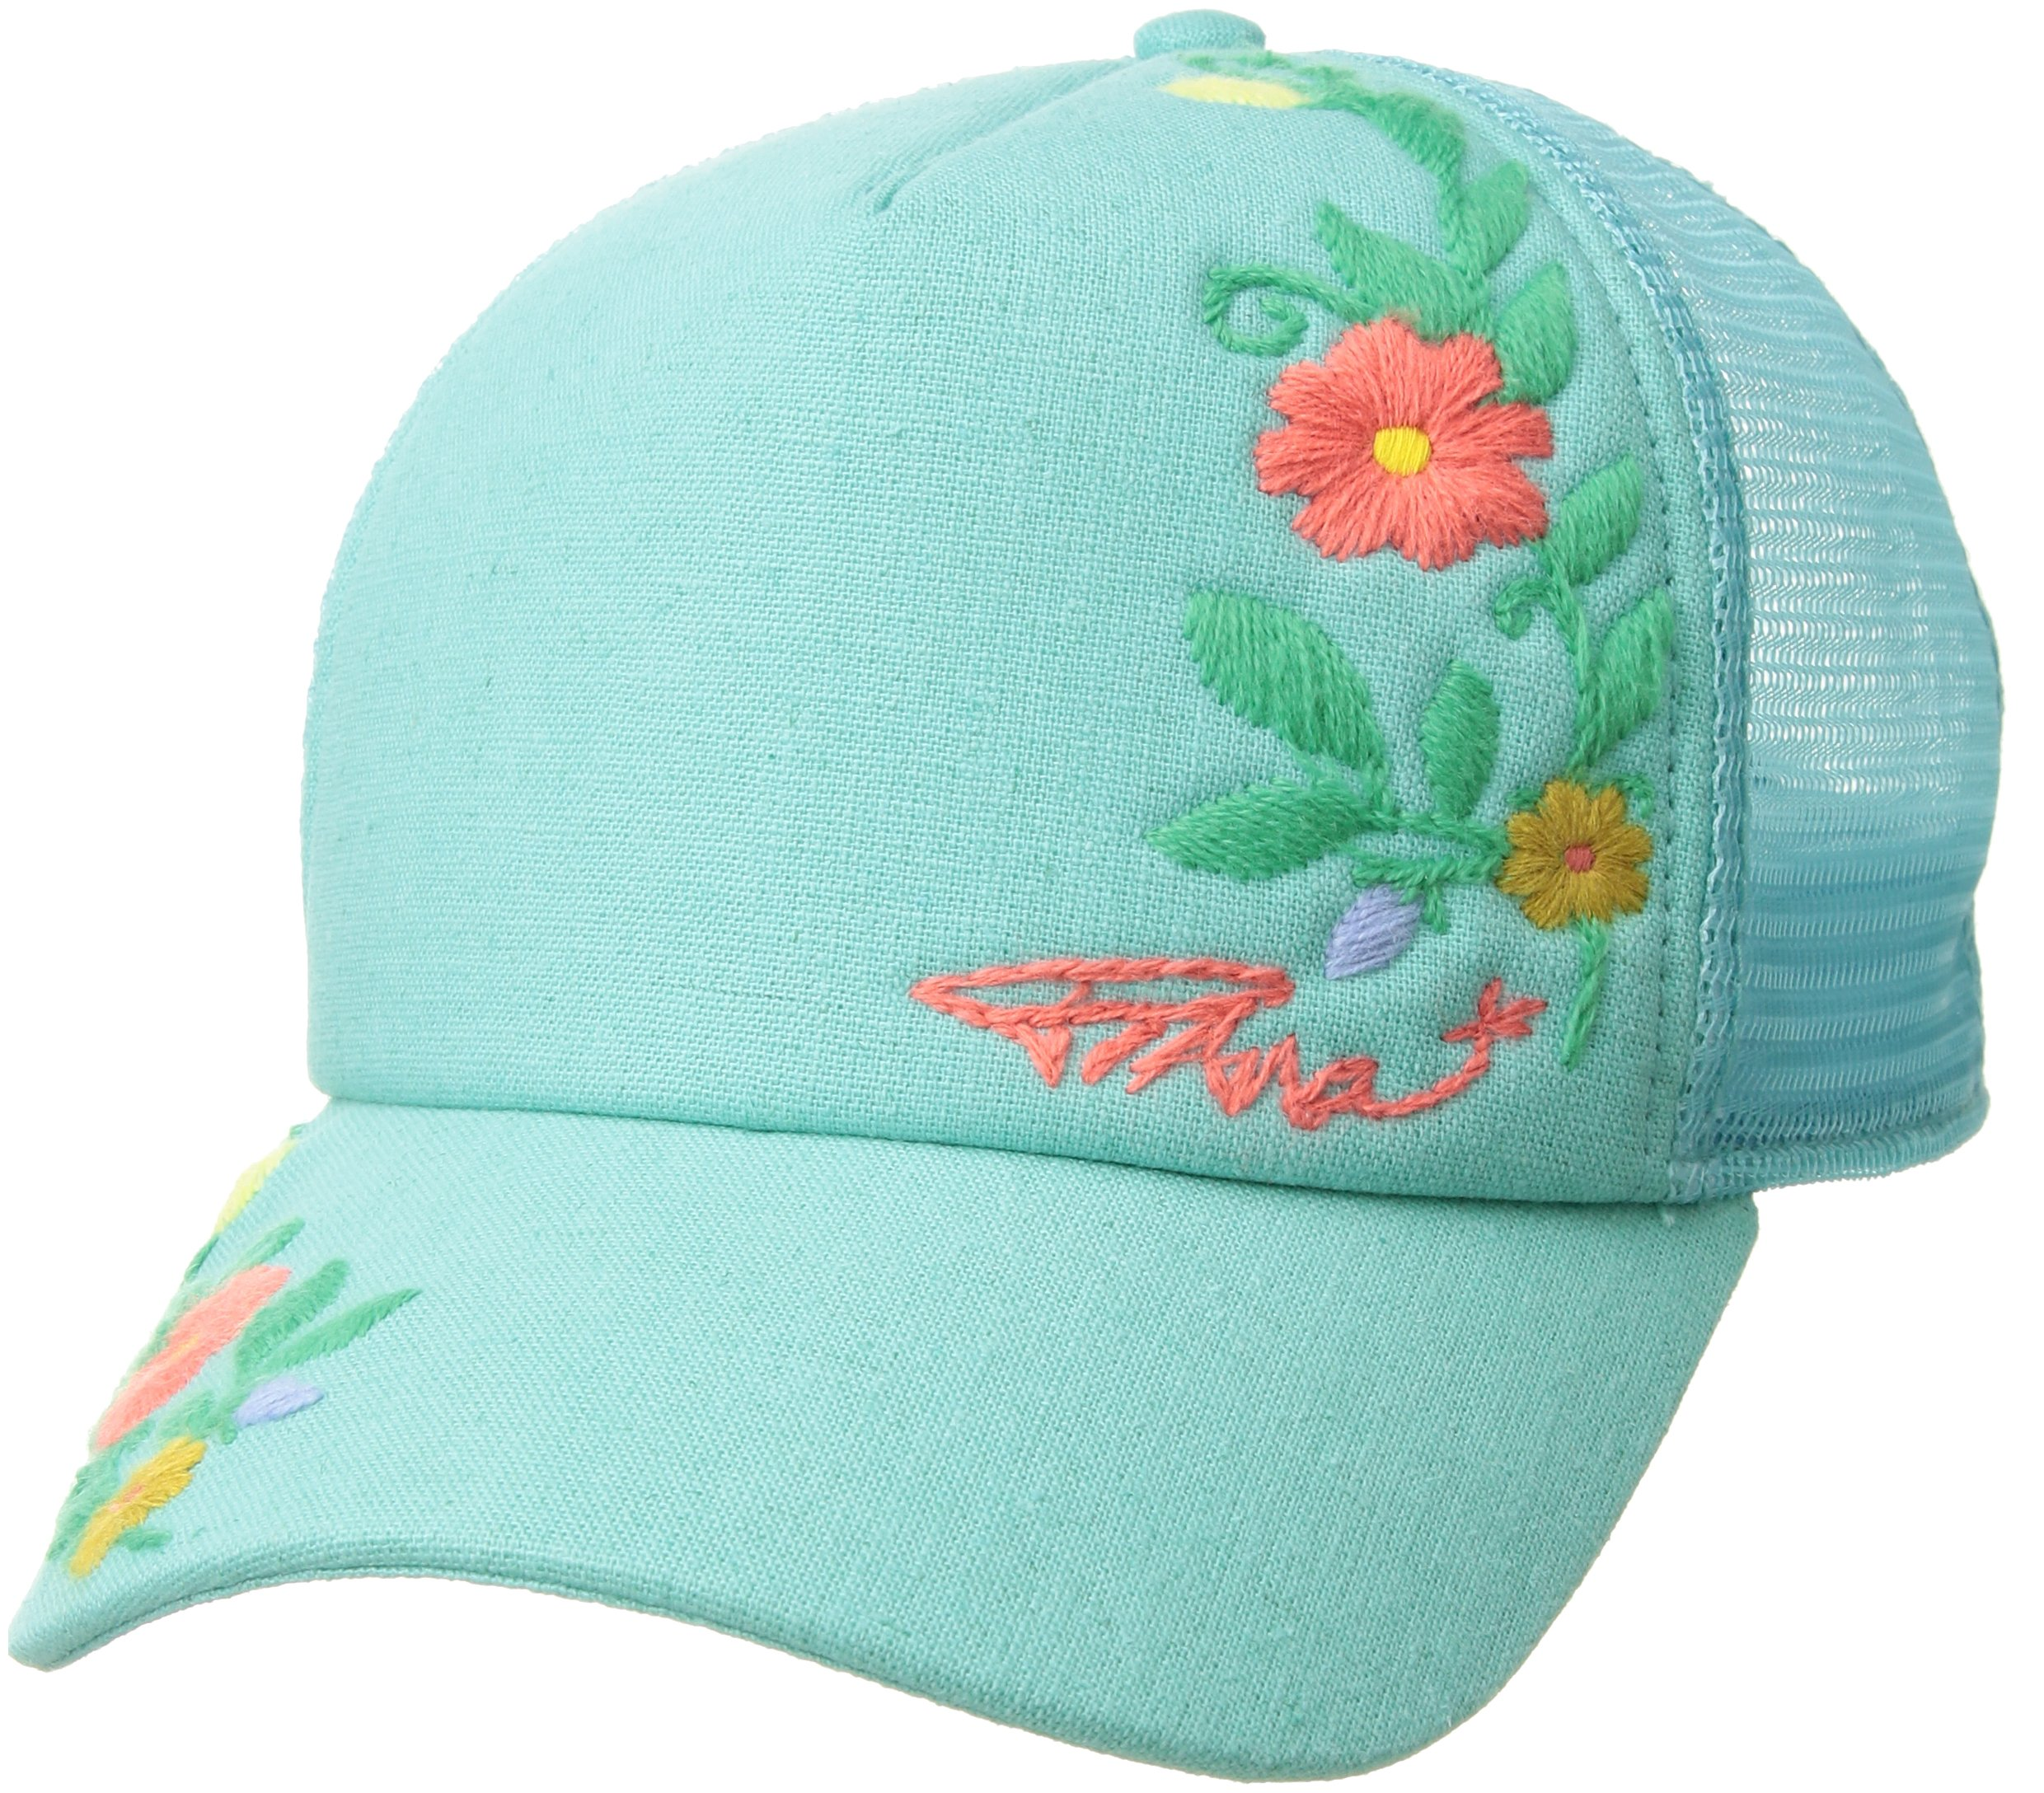 prAna Embroidered Trucker, Succulent Green, One Size by prAna (Image #1)